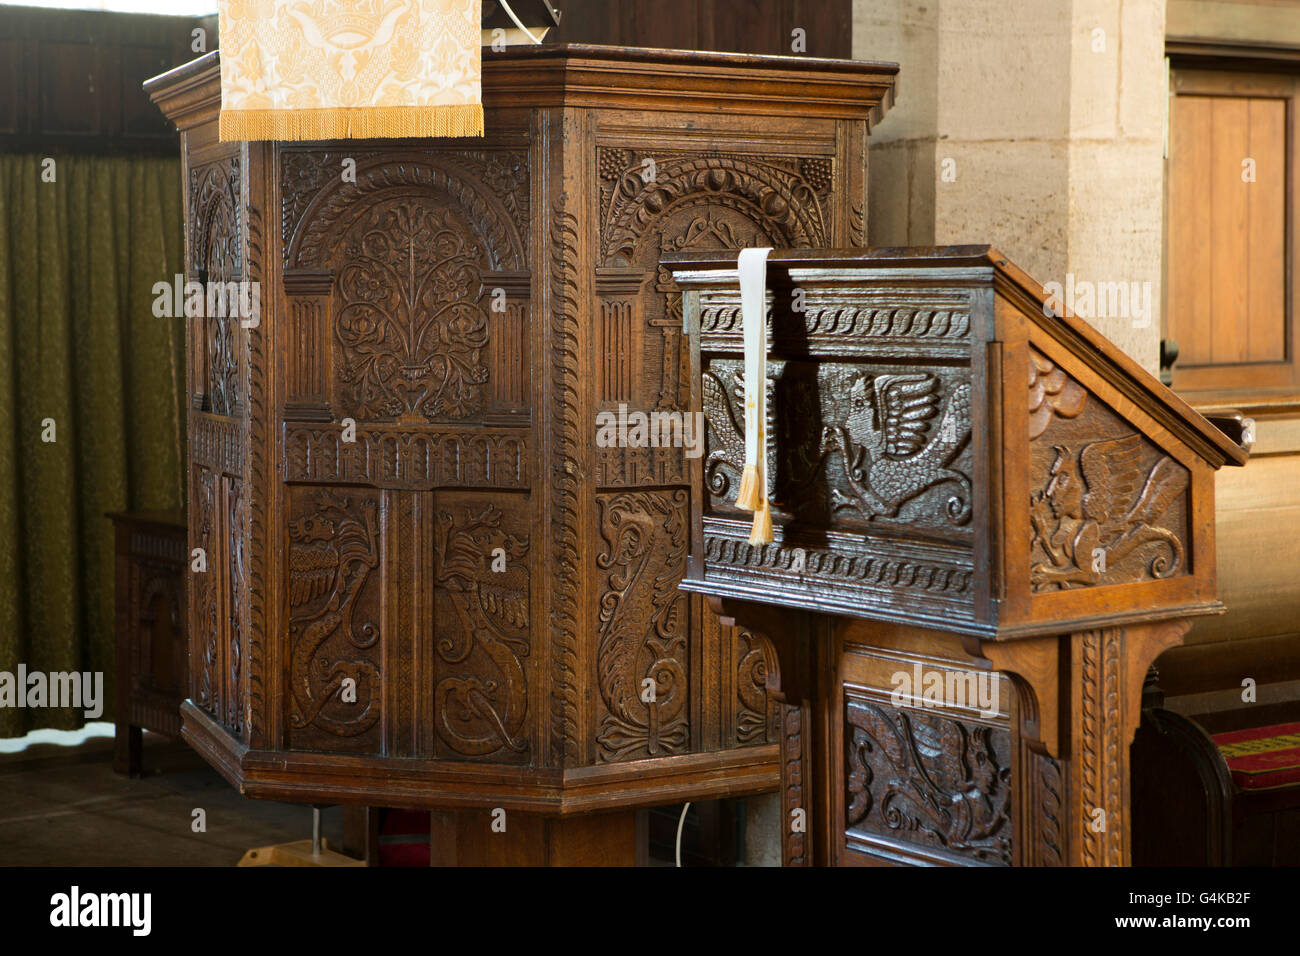 UK, Herefordshire, Pembridge, St Mary the Virgin Church, lectern and octagonal Jacobean pulpit - Stock Image